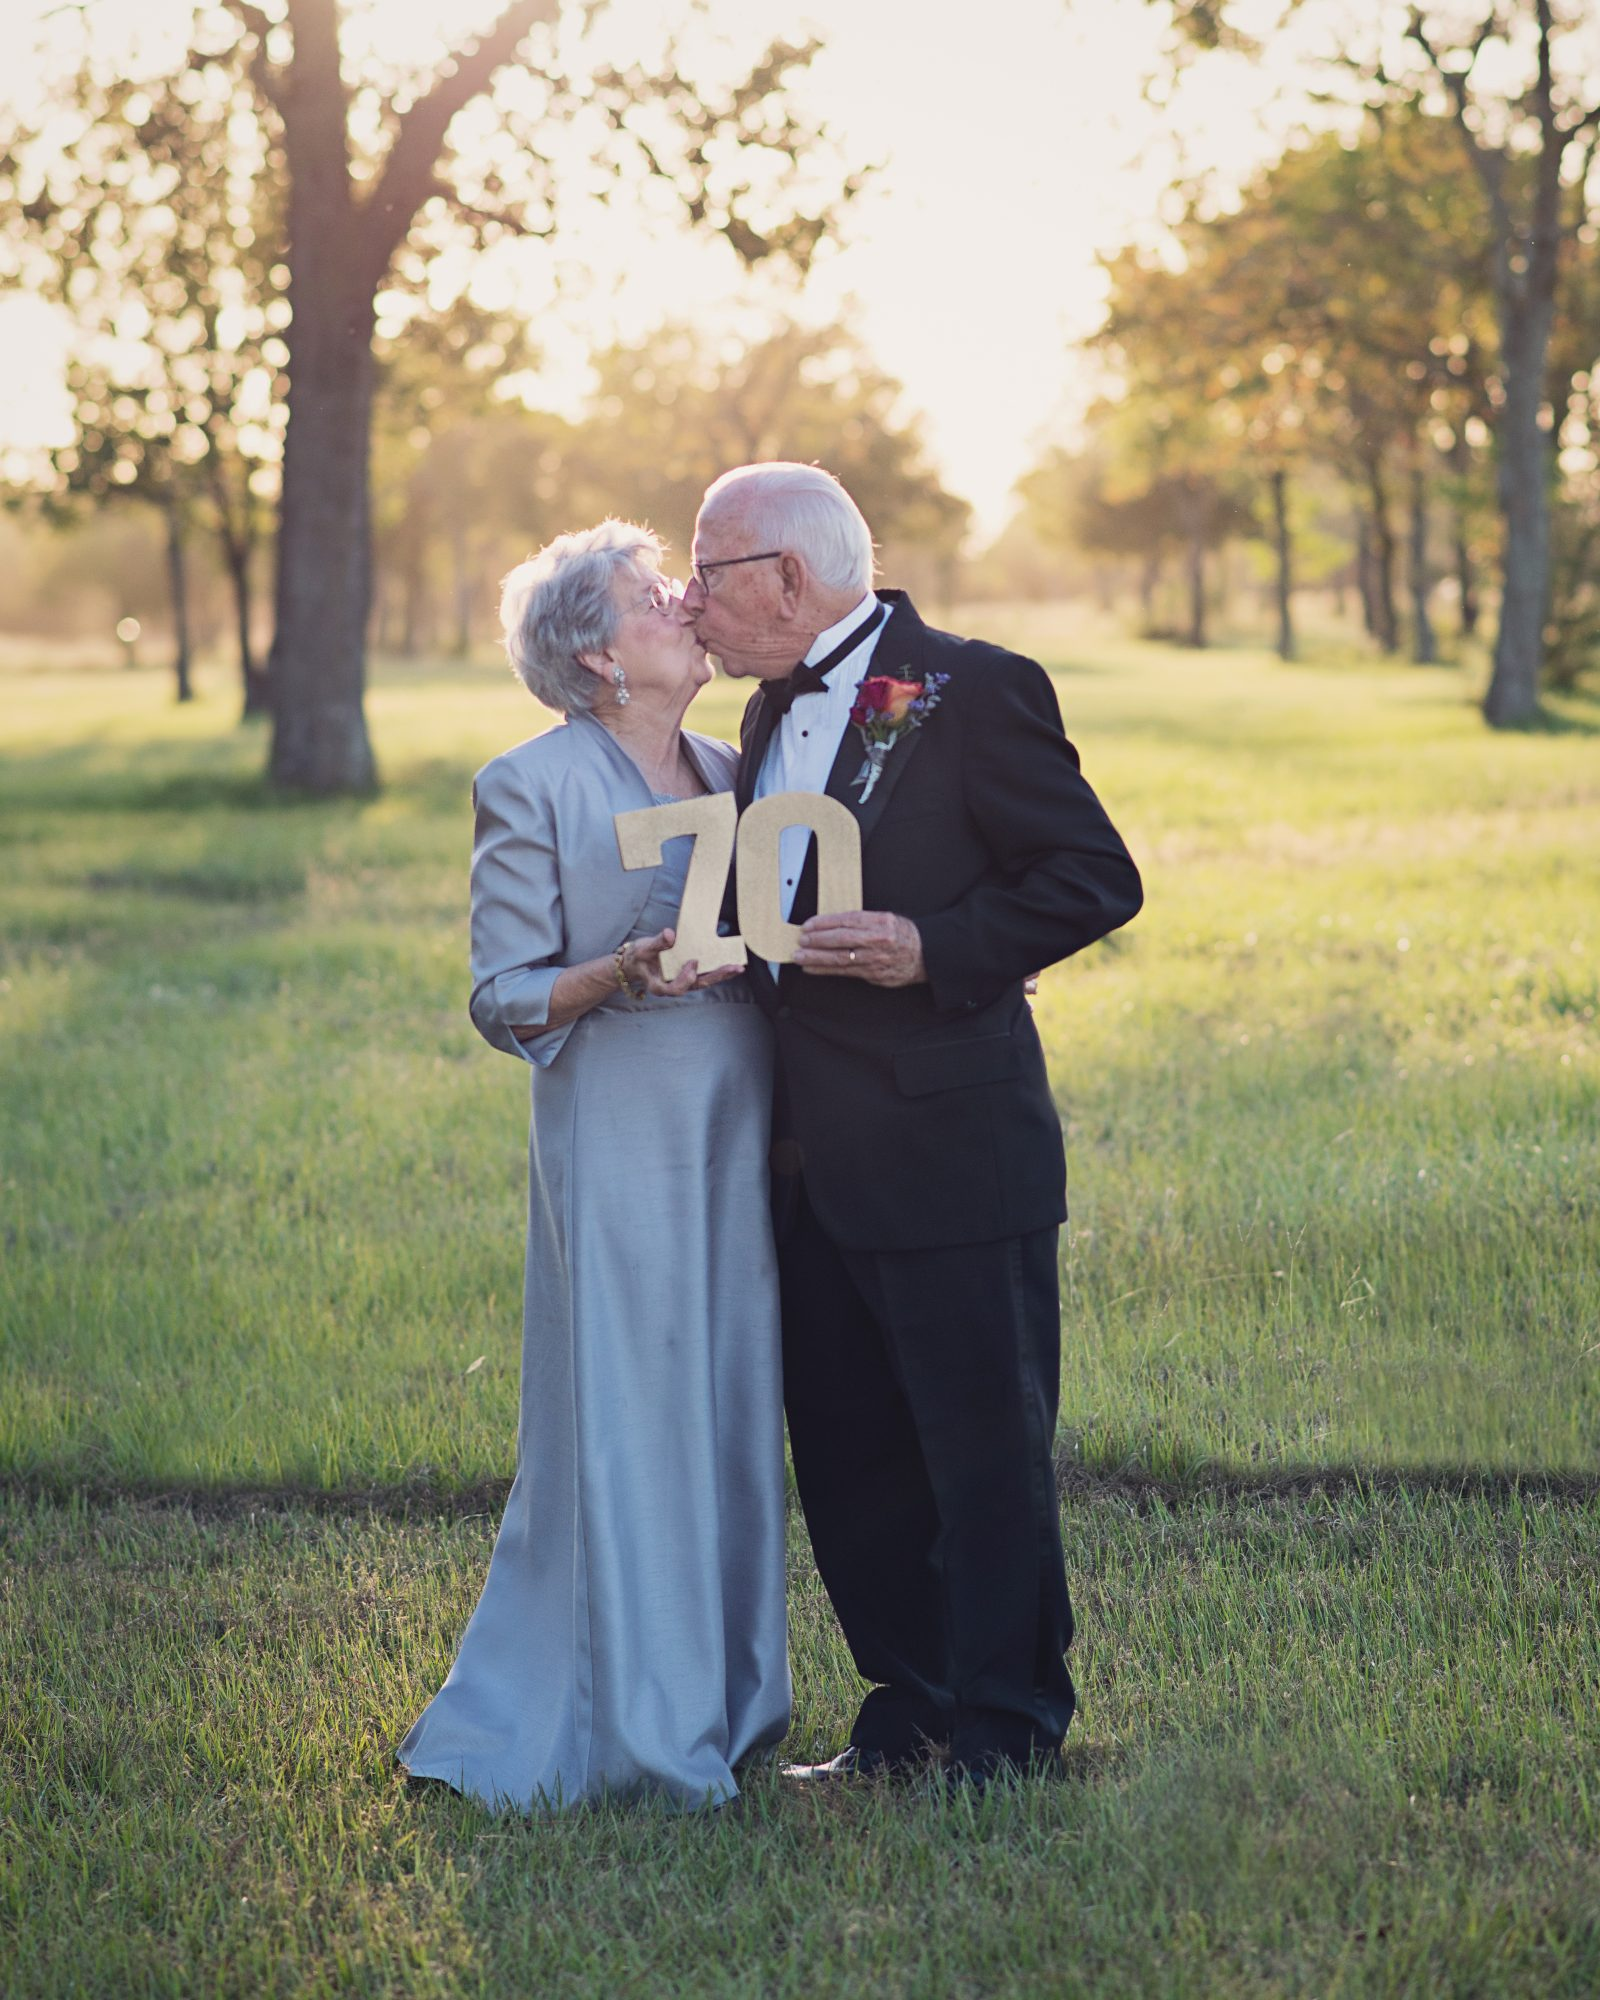 Adorable couple celebrates 70th anniversary with wedding photos they